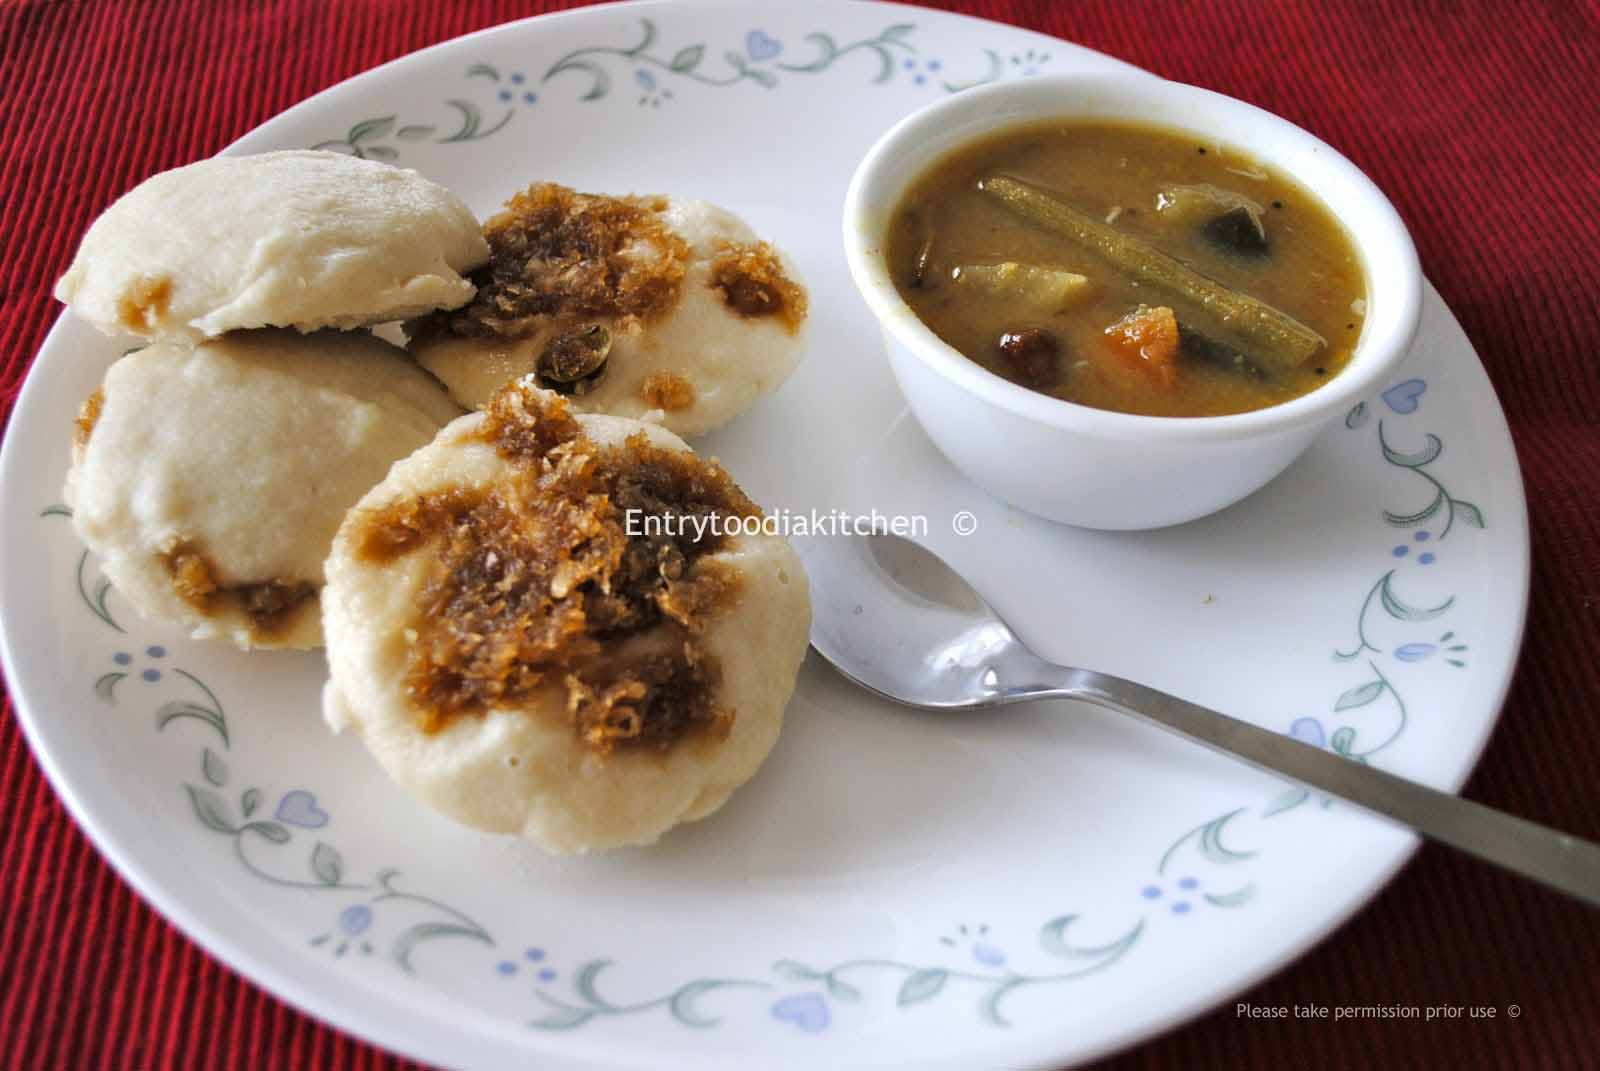 An entry to odia kitchen 2011 in odisa idli is served with ghuguni dalma or hot milk with sugar here goes the recipe of a favourite dish from my kitchen thecheapjerseys Images